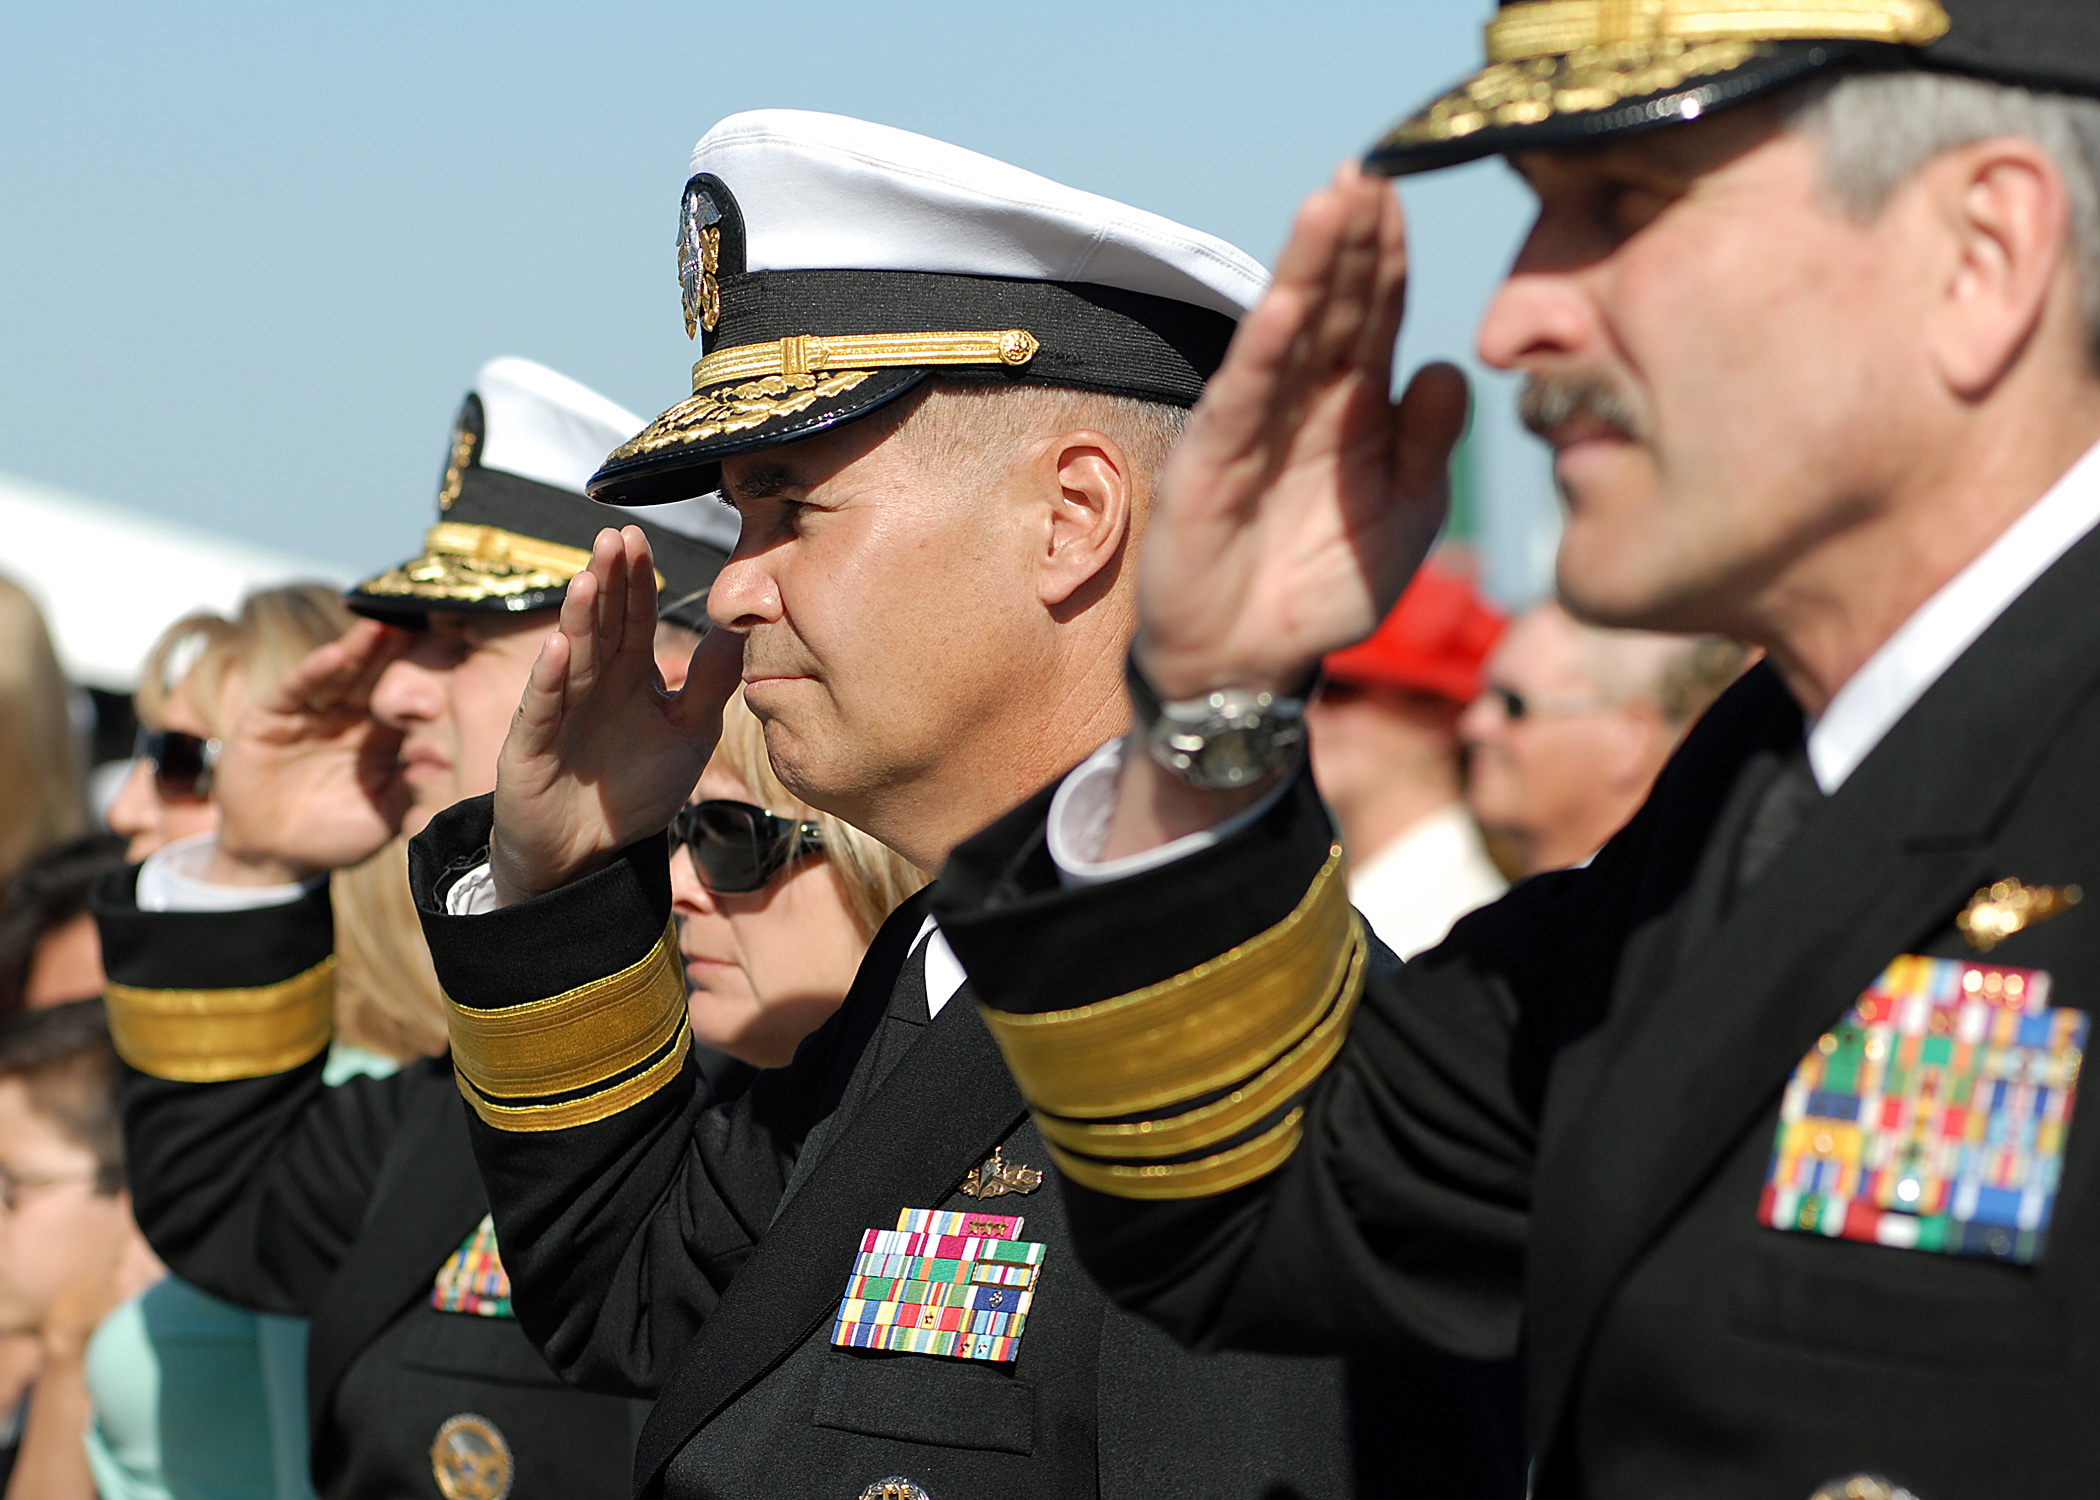 File:US Navy 070323-N-4565G-007 Navy Flag officers salute ...